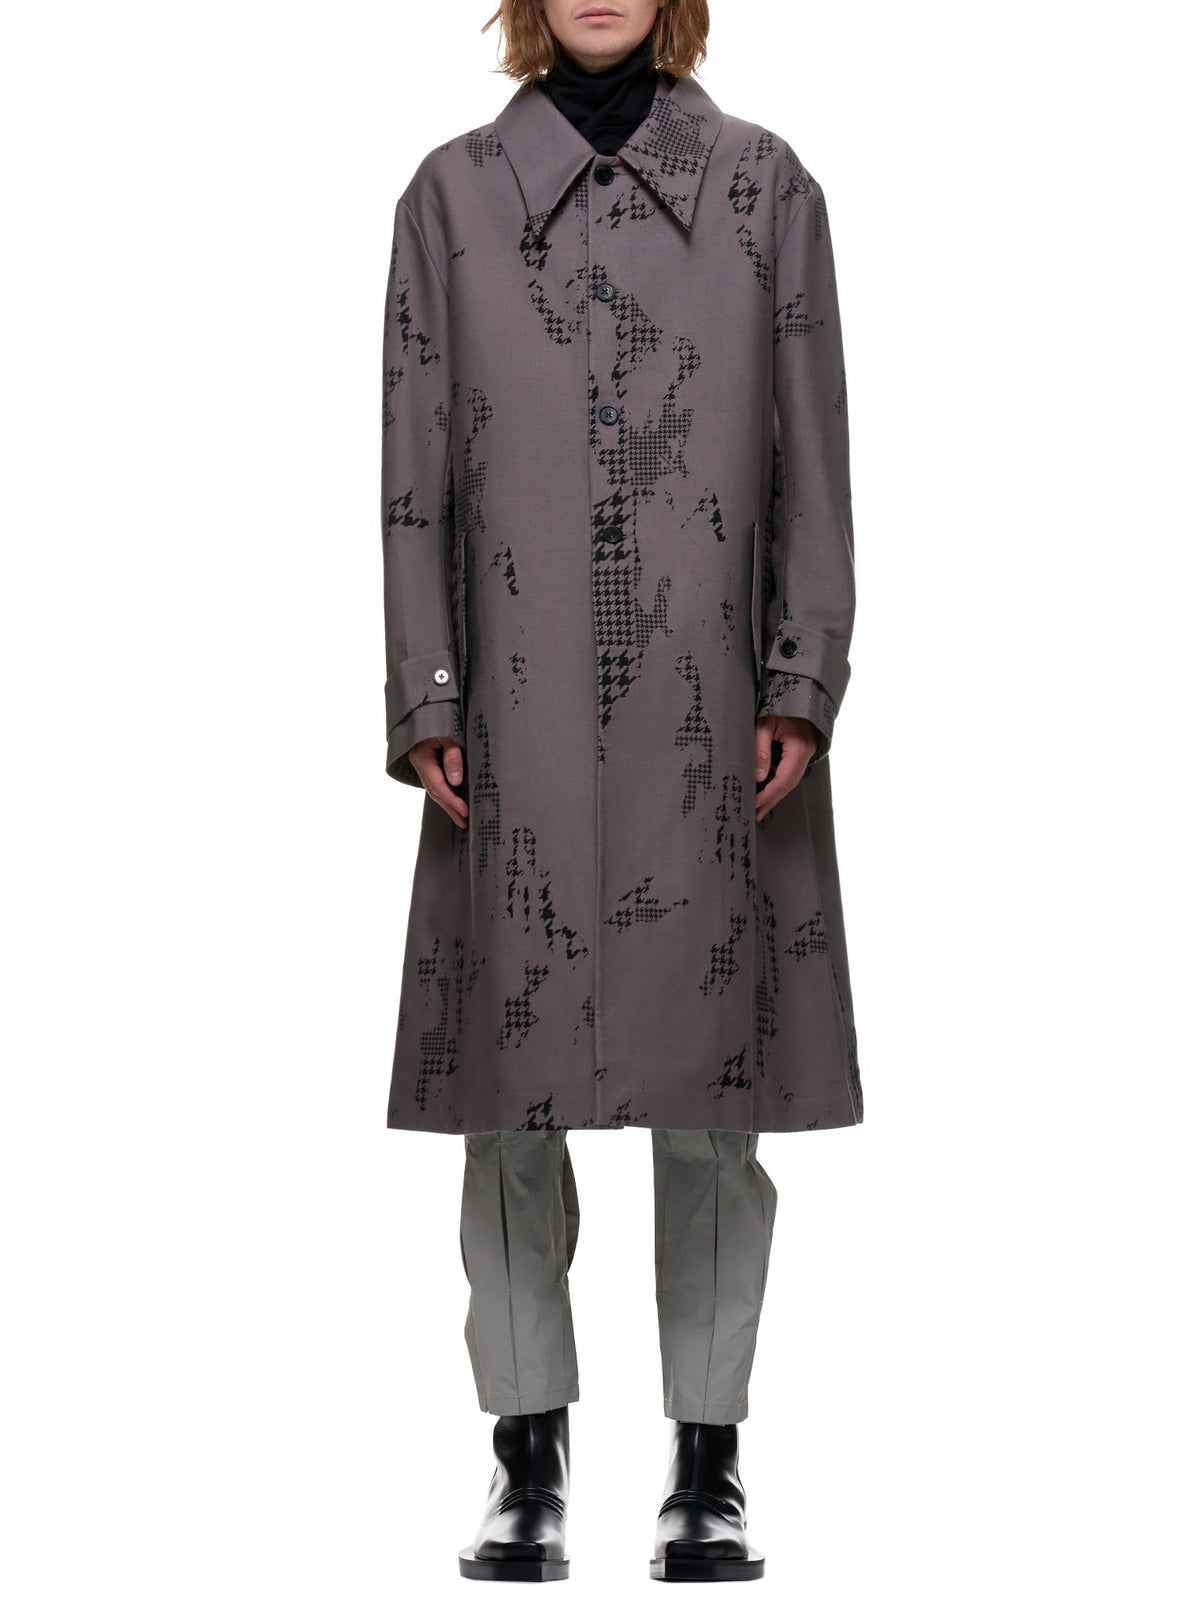 Floating Lapel Houndstooth Coat (1003-MAC-GRAY)